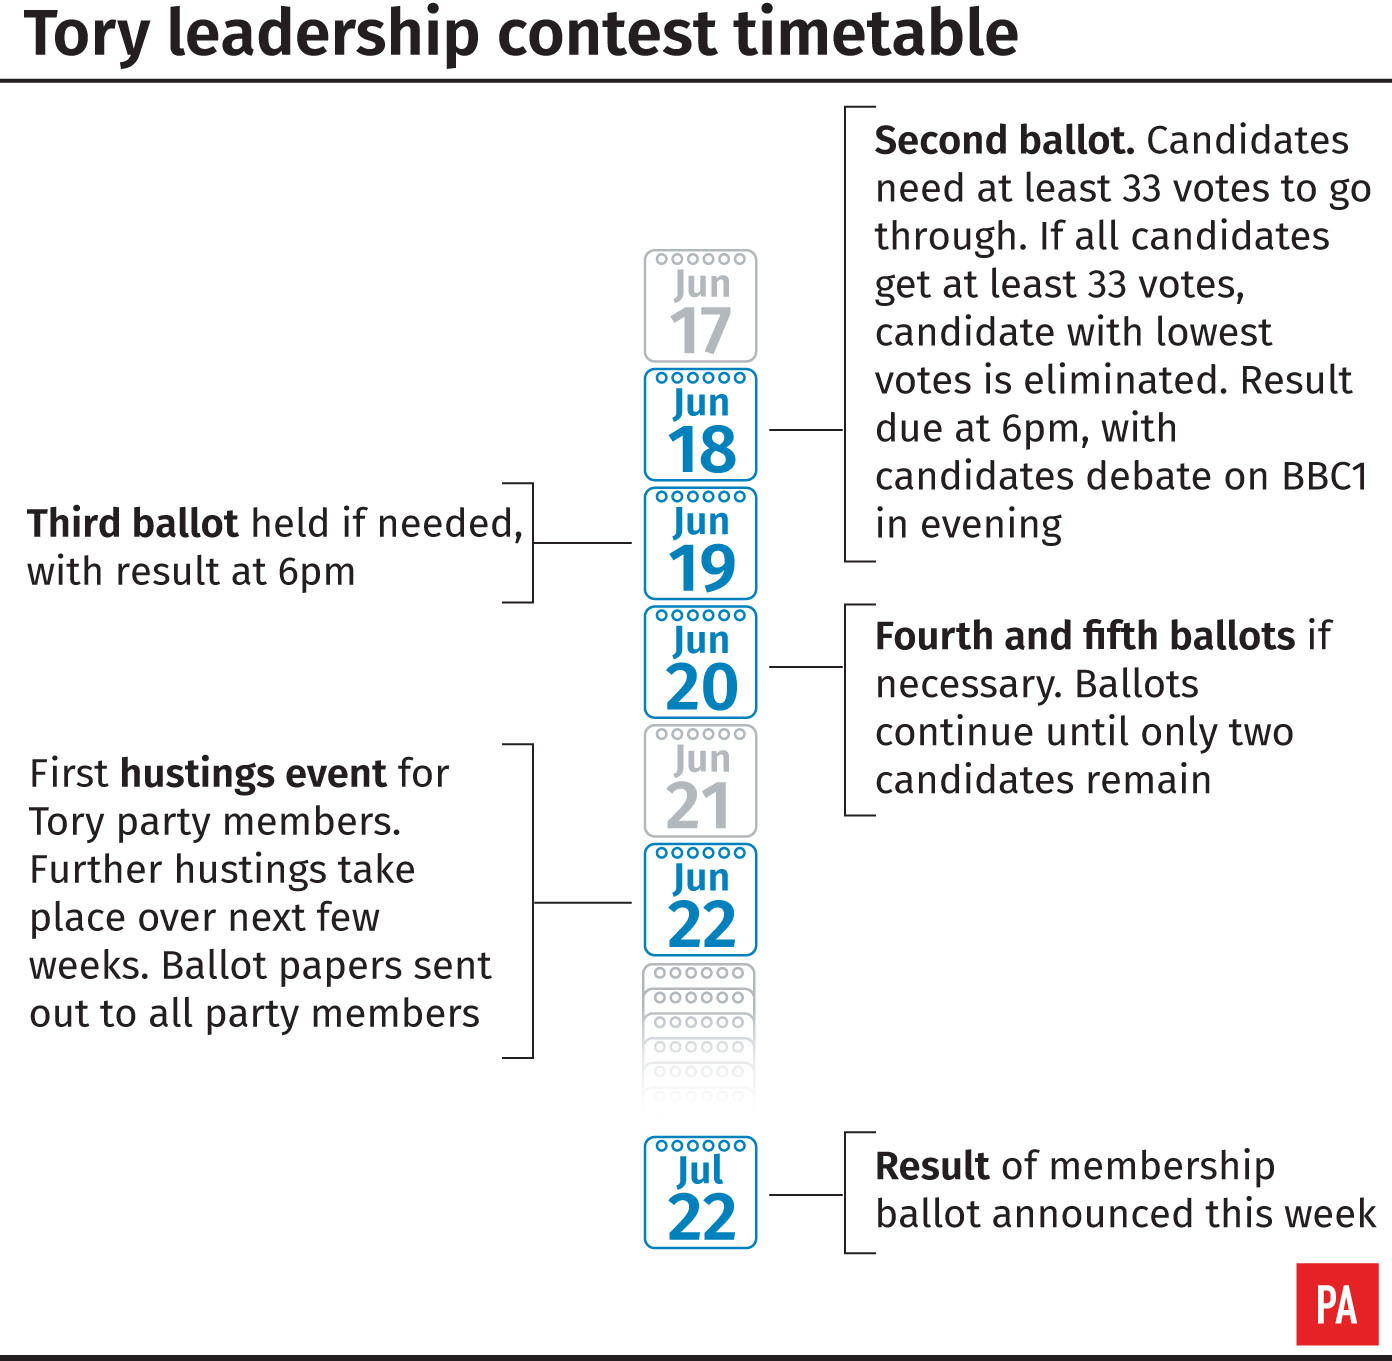 Next knockout vote looms in Tory leadership race